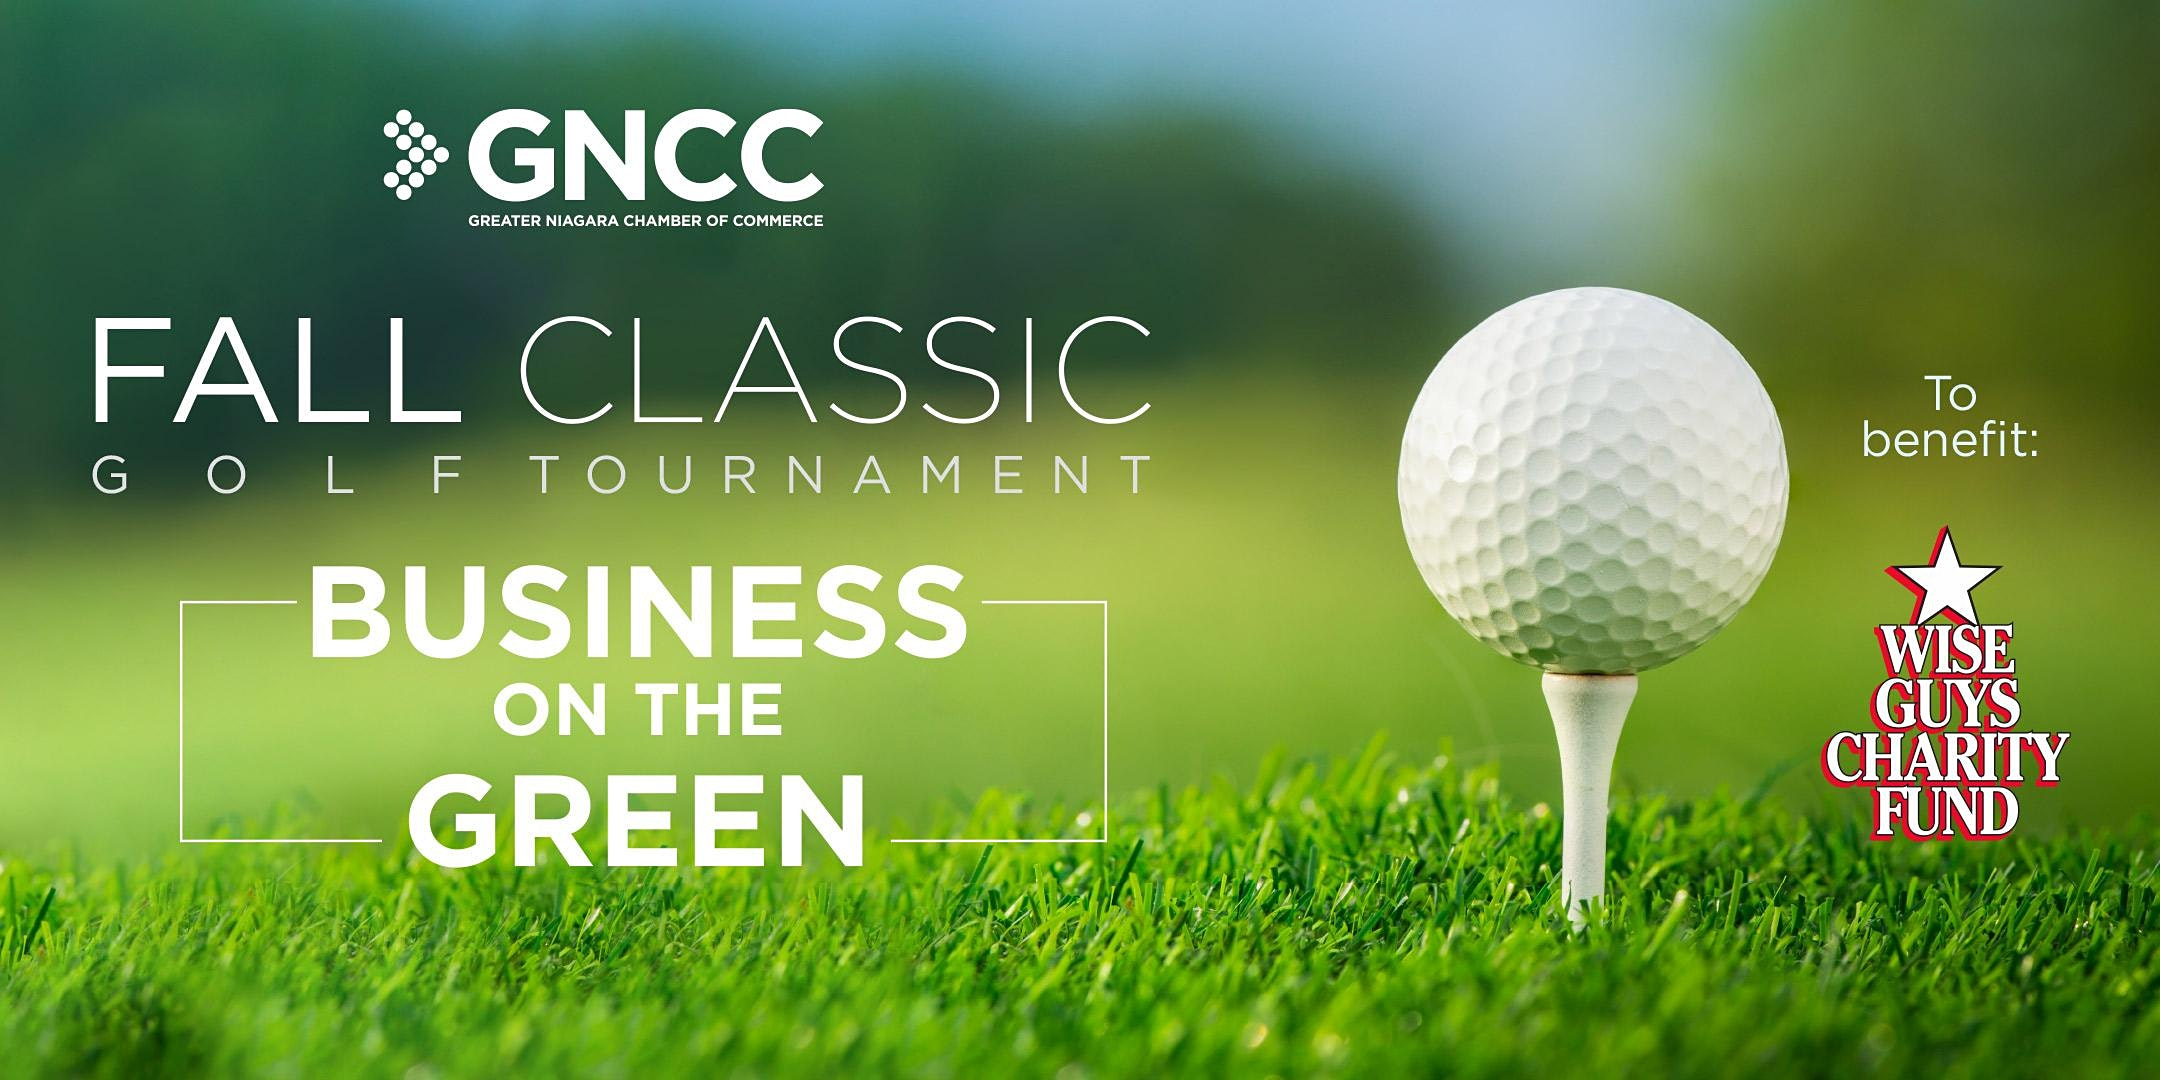 Business on the Green: GNCC Fall Classic Golf Tournament